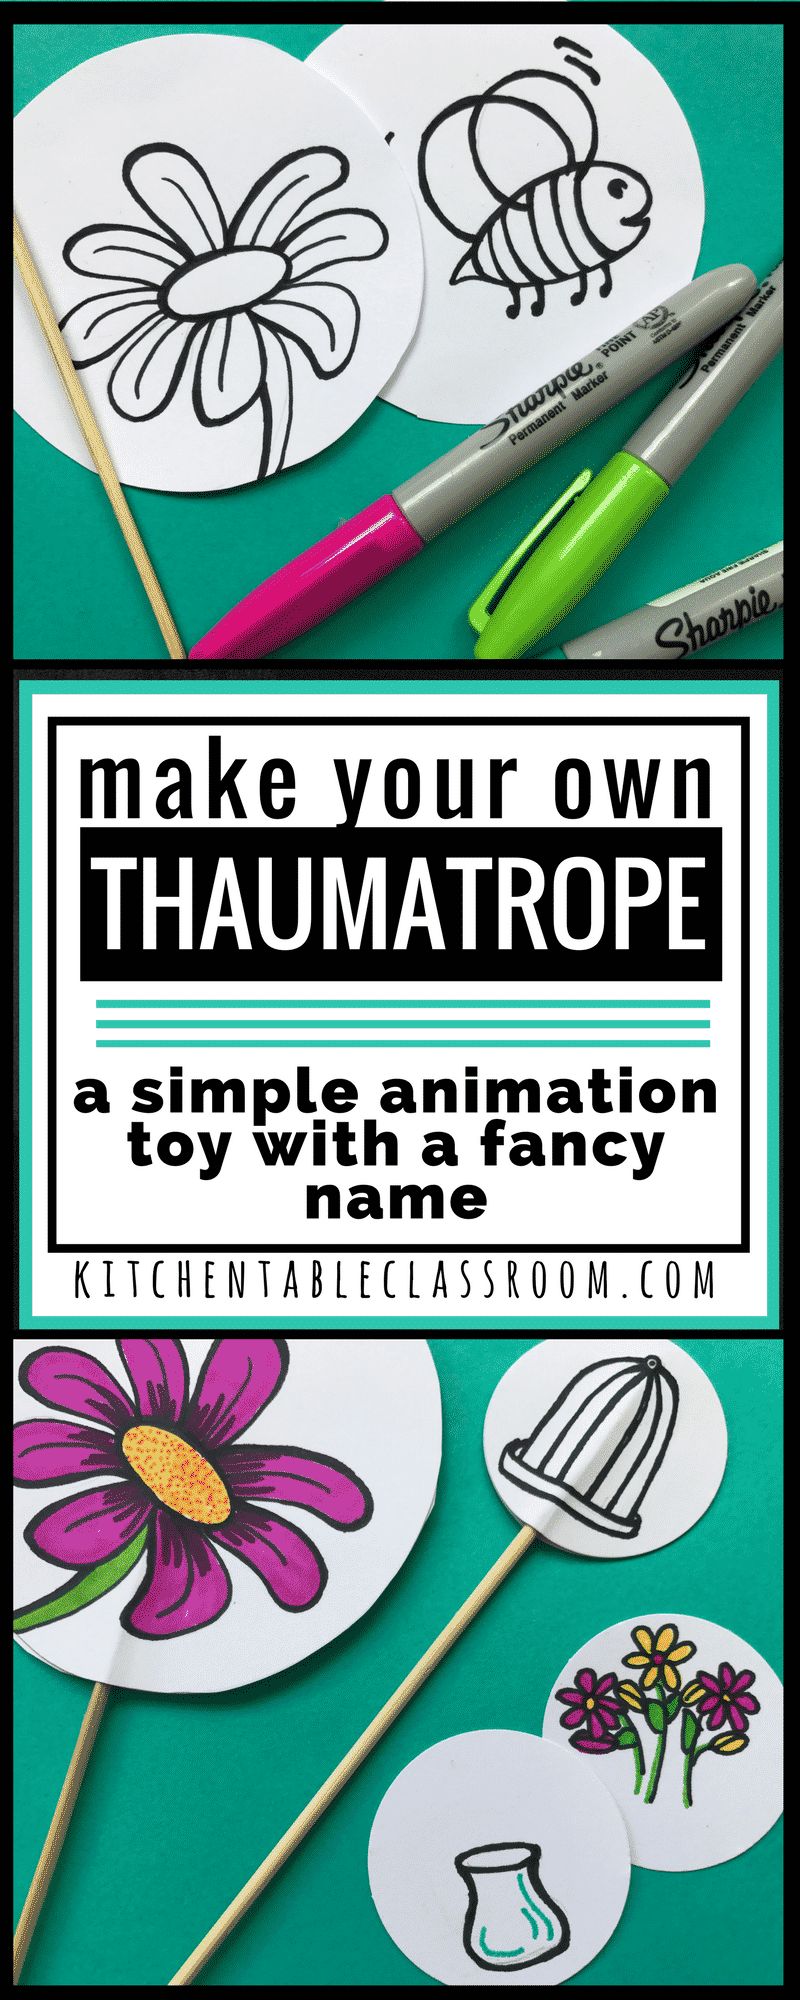 picture regarding Thaumatrope Printable named Generating A Thaumatrope-A Easy Animation Toy with a Extravagant